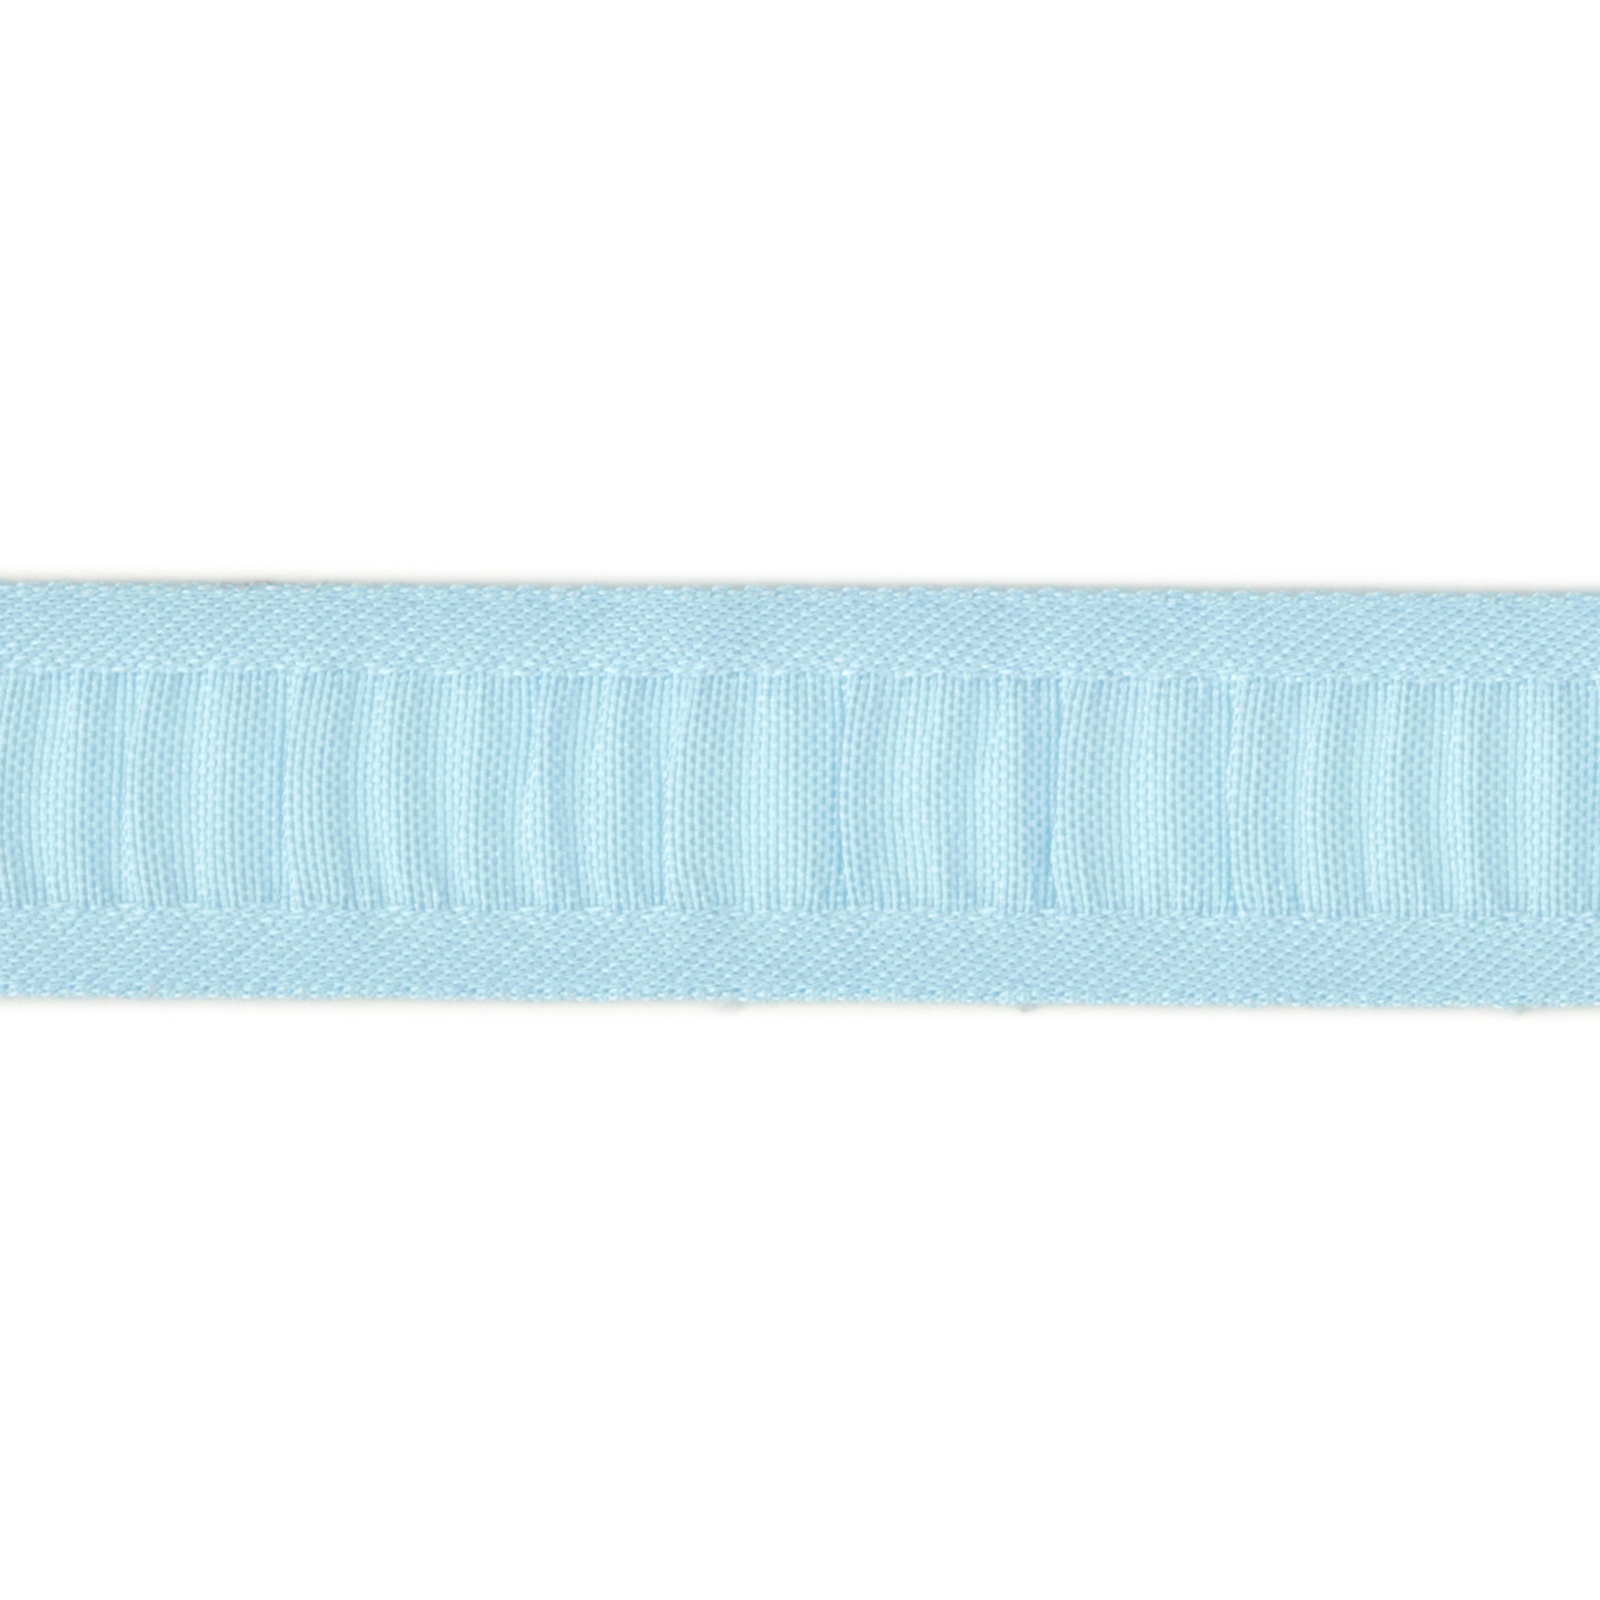 7/8'' Ruched Ruffle Satin Edge Ribbon Light Blue